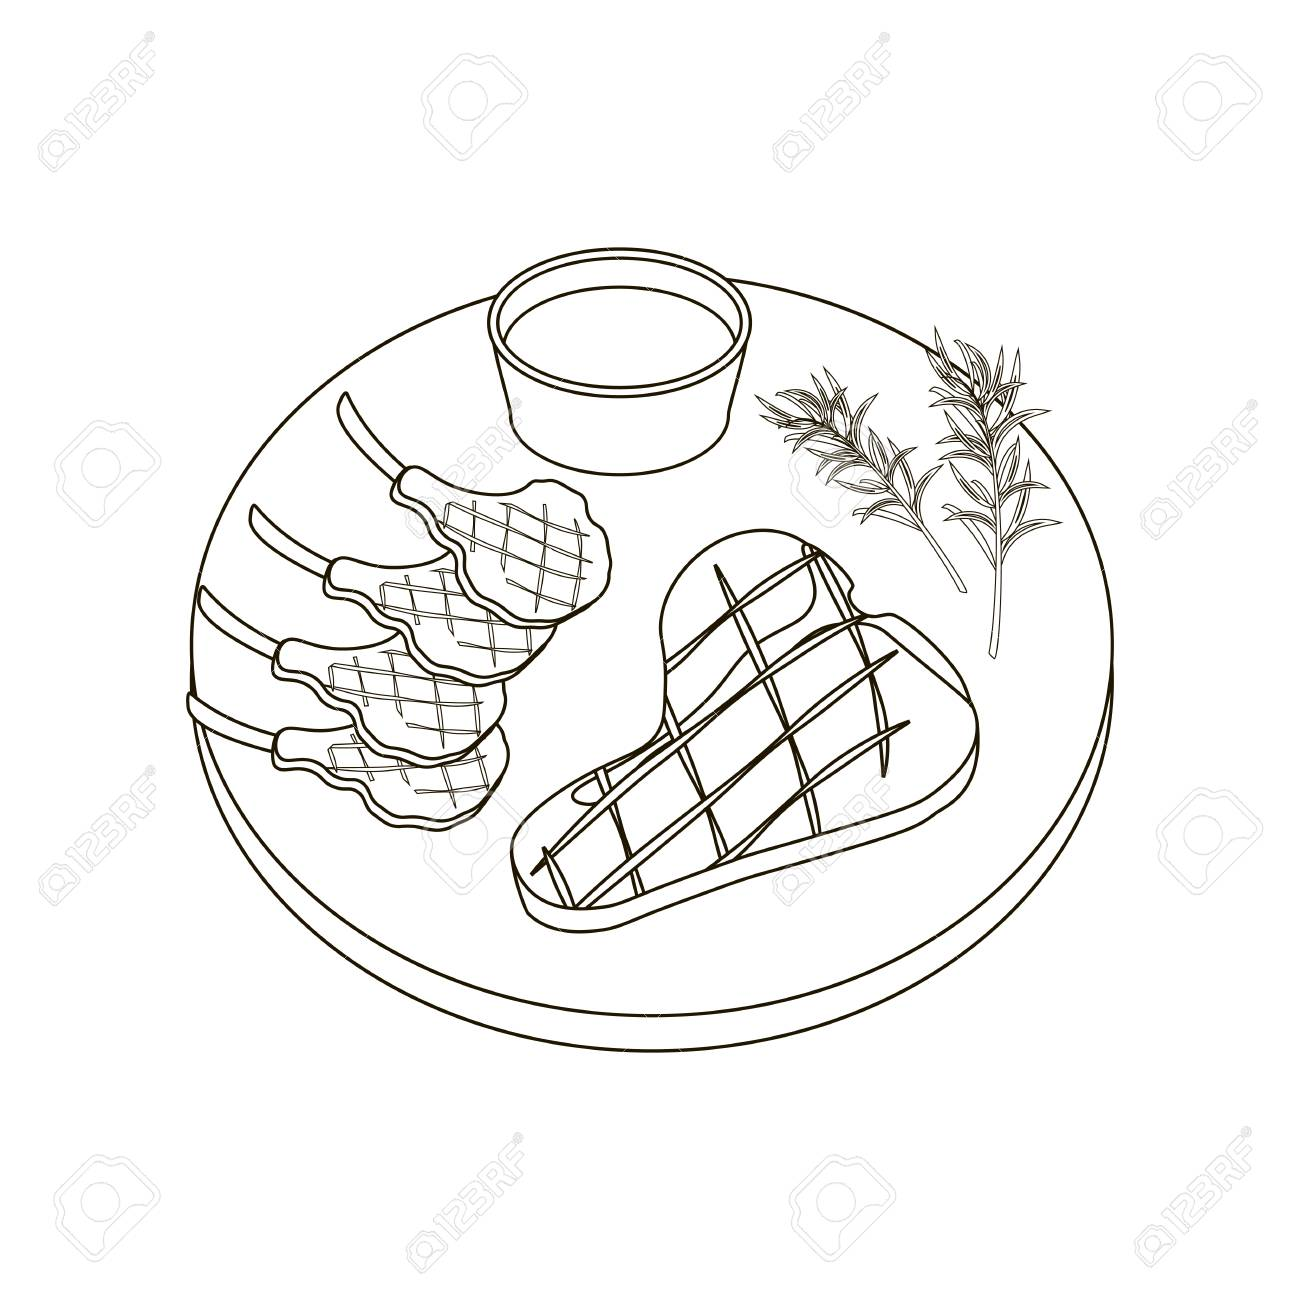 Steak Meat Coloring Pages On The White Background, Vector